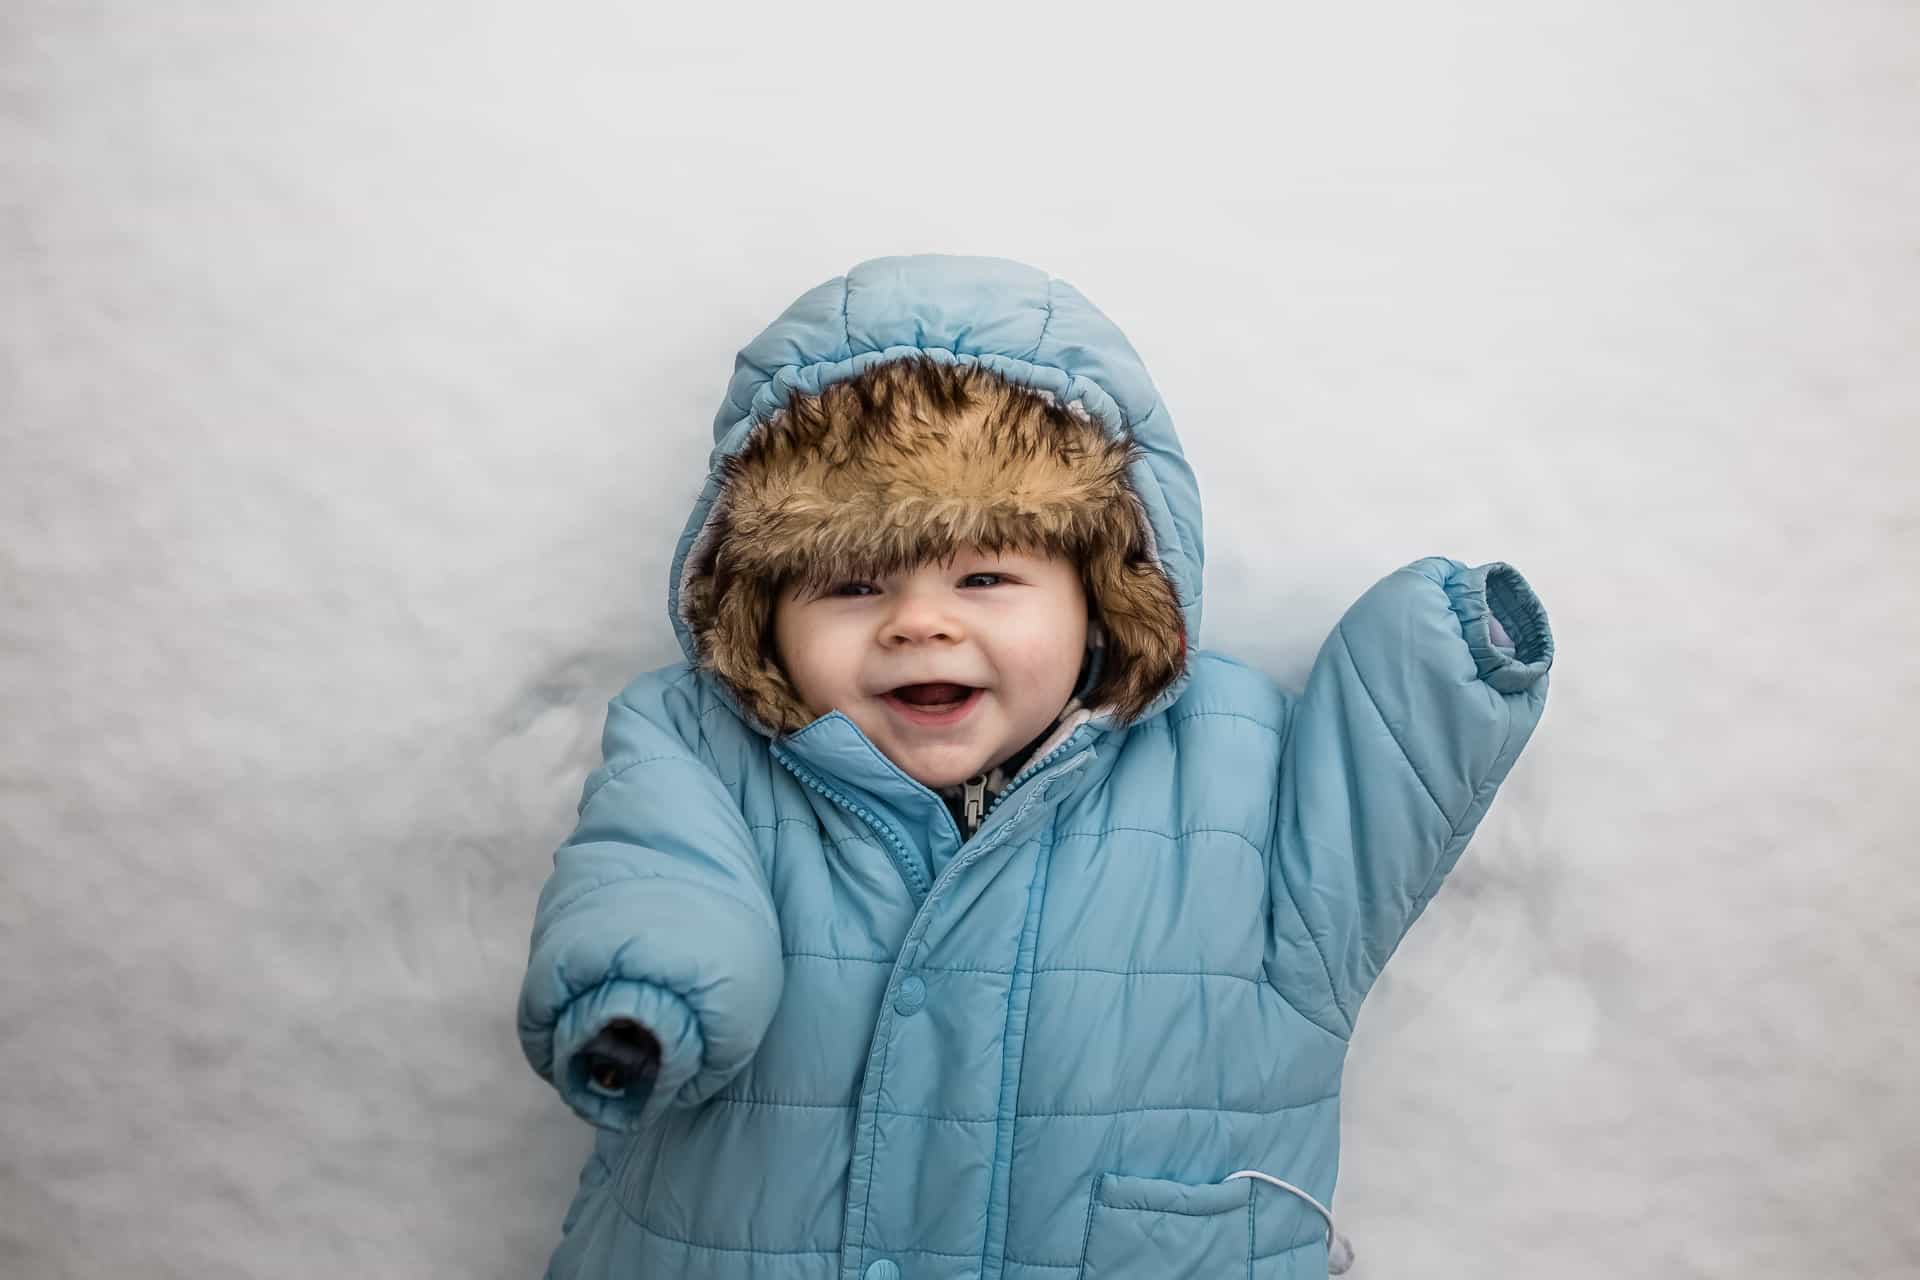 baby in snowsuit and furry hat laying in the snow smiling